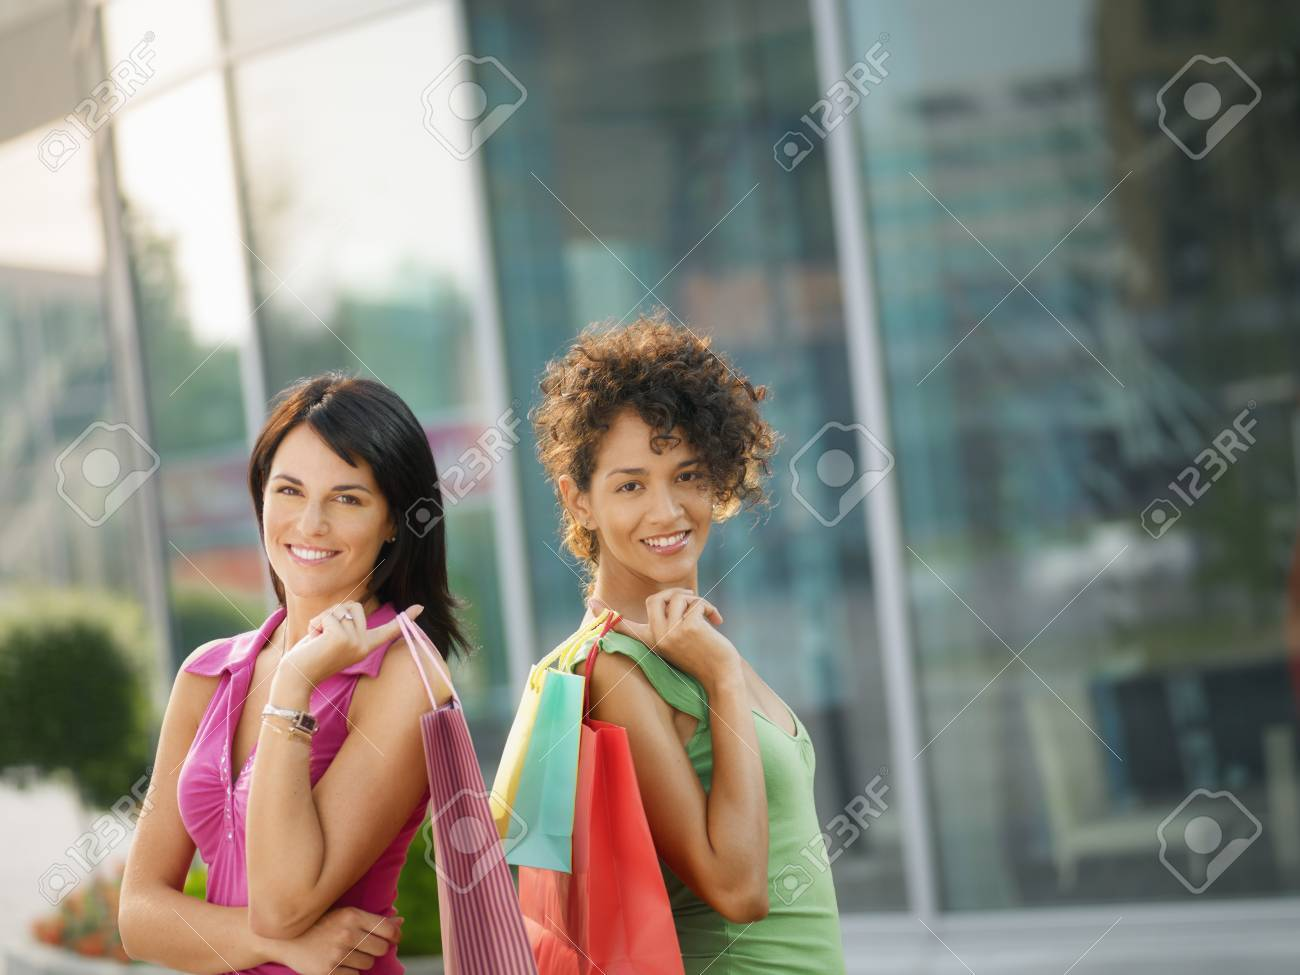 mid adult italian woman and hispanic woman carrying shopping bags out of shopping center. Horizontal shape, waist up, copy space Stock Photo - 7380431